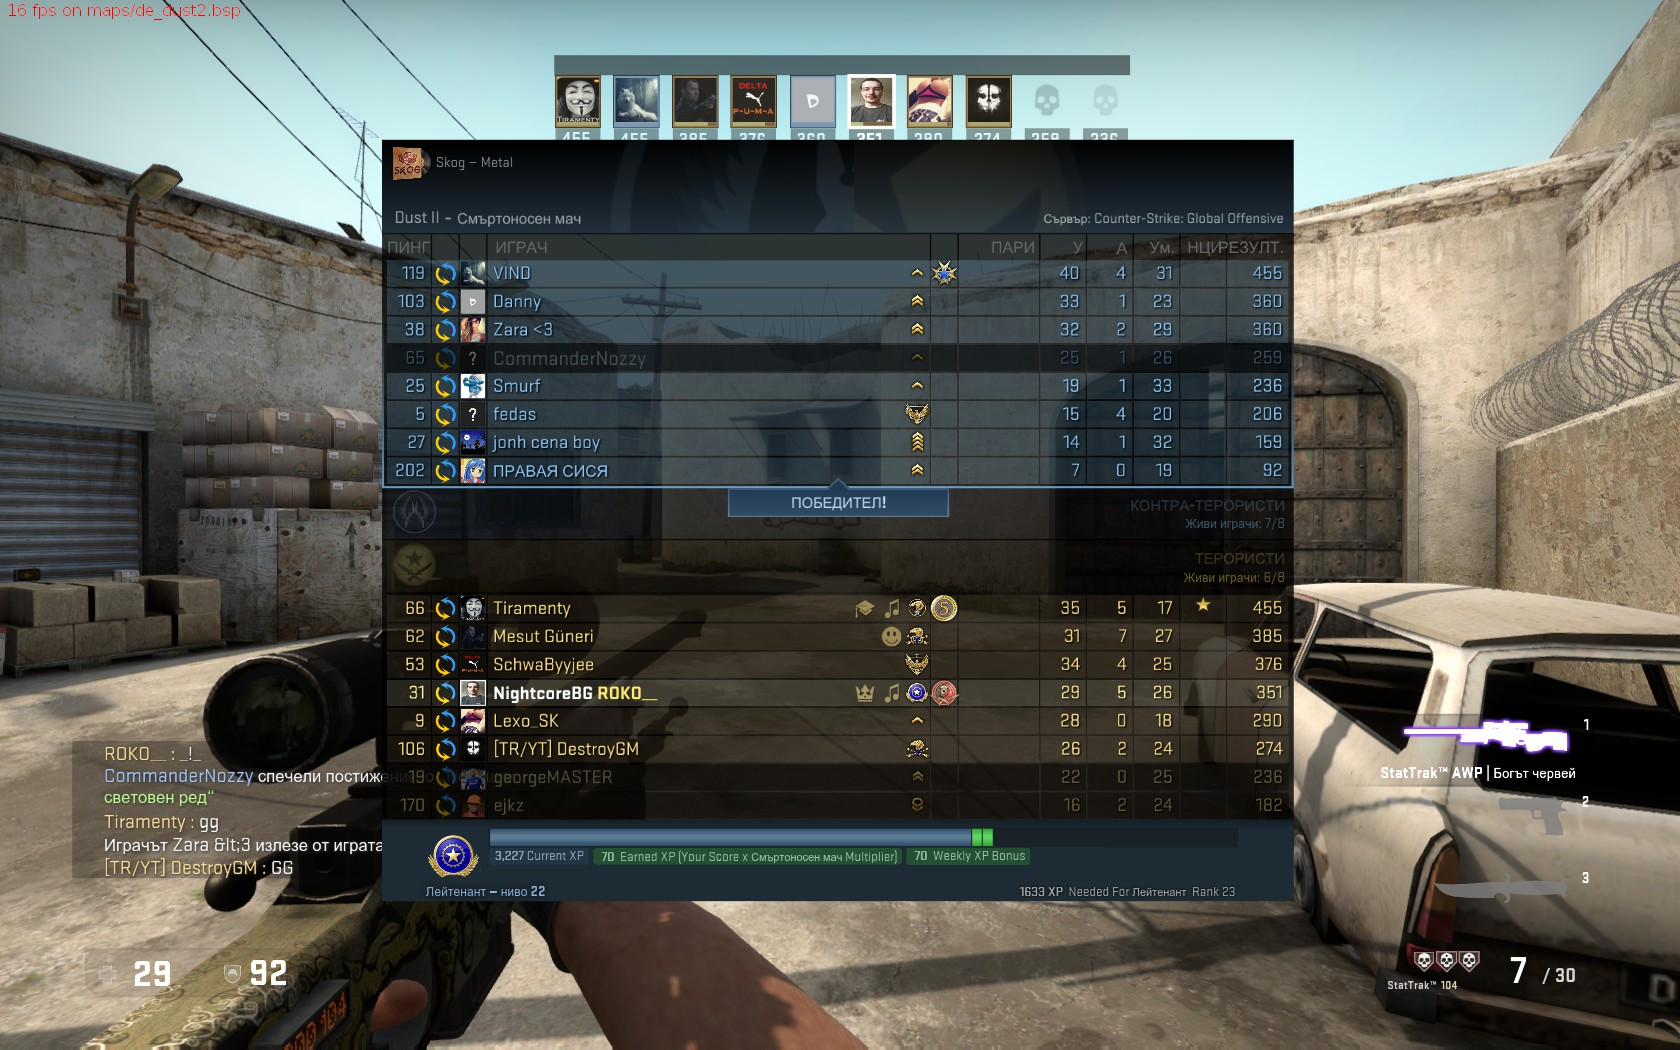 Linux] Large FPS drops when opening scoreboard in game, operation